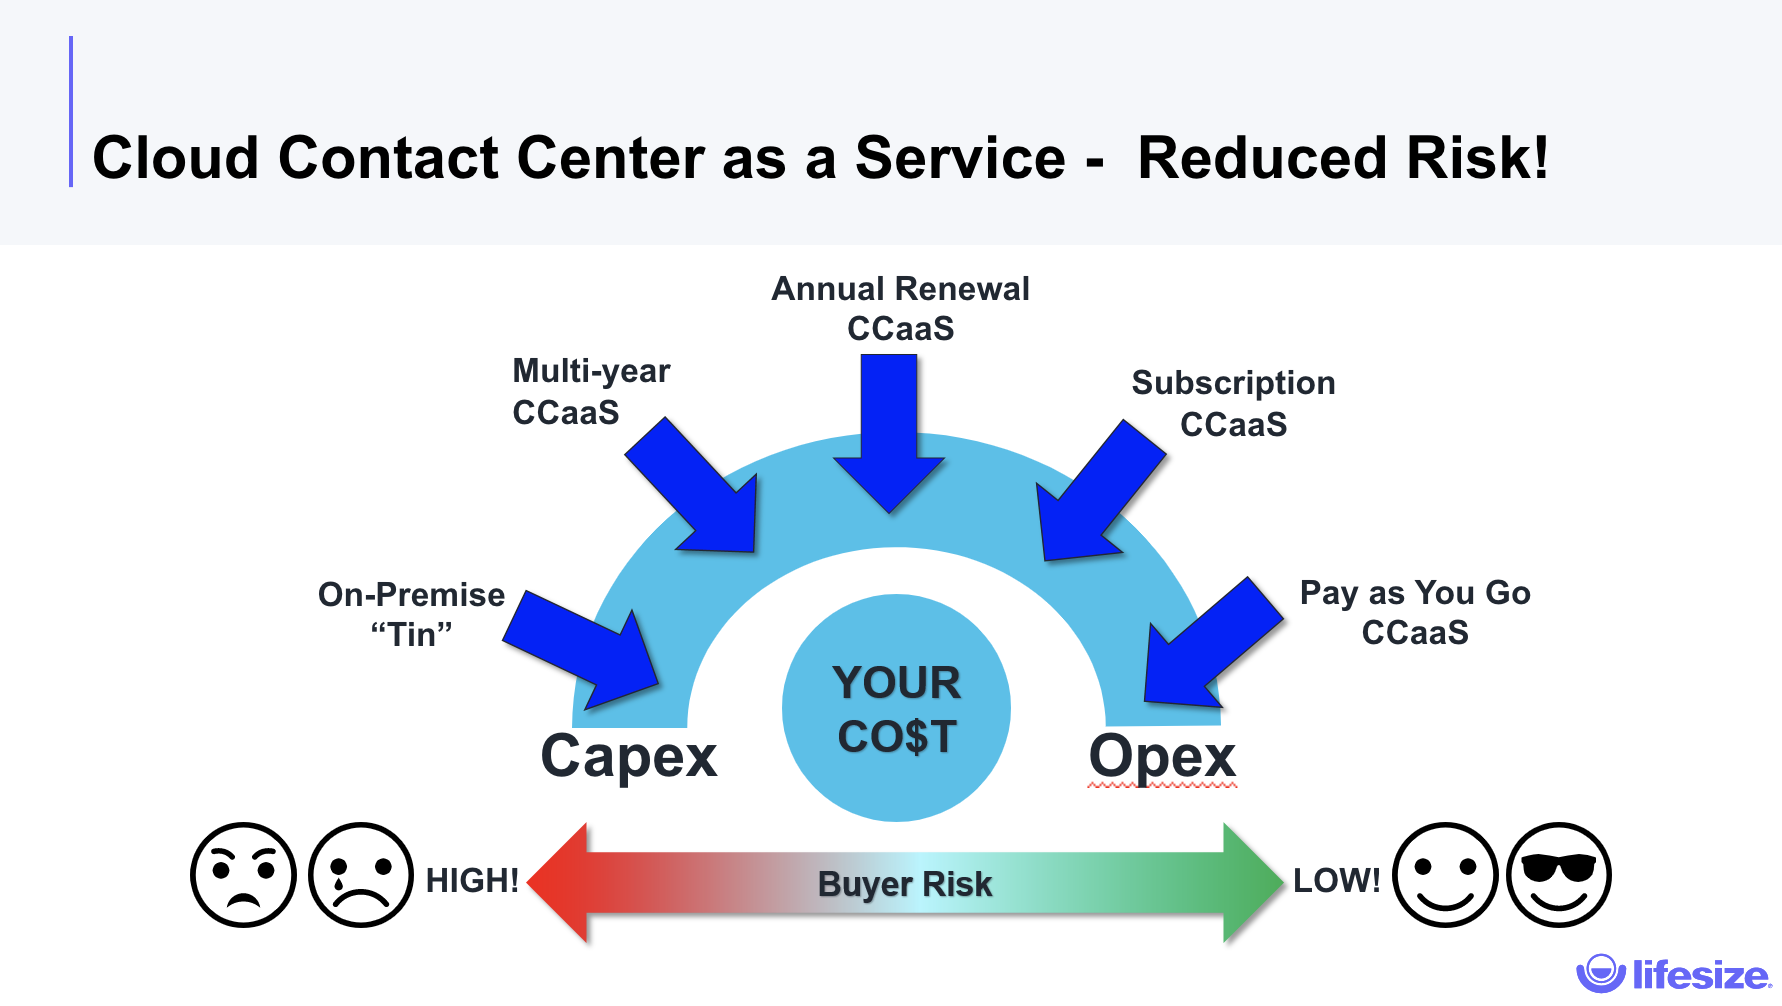 Chart showing reduced risk and cost of contact center-as-a-service, compared to on-premise